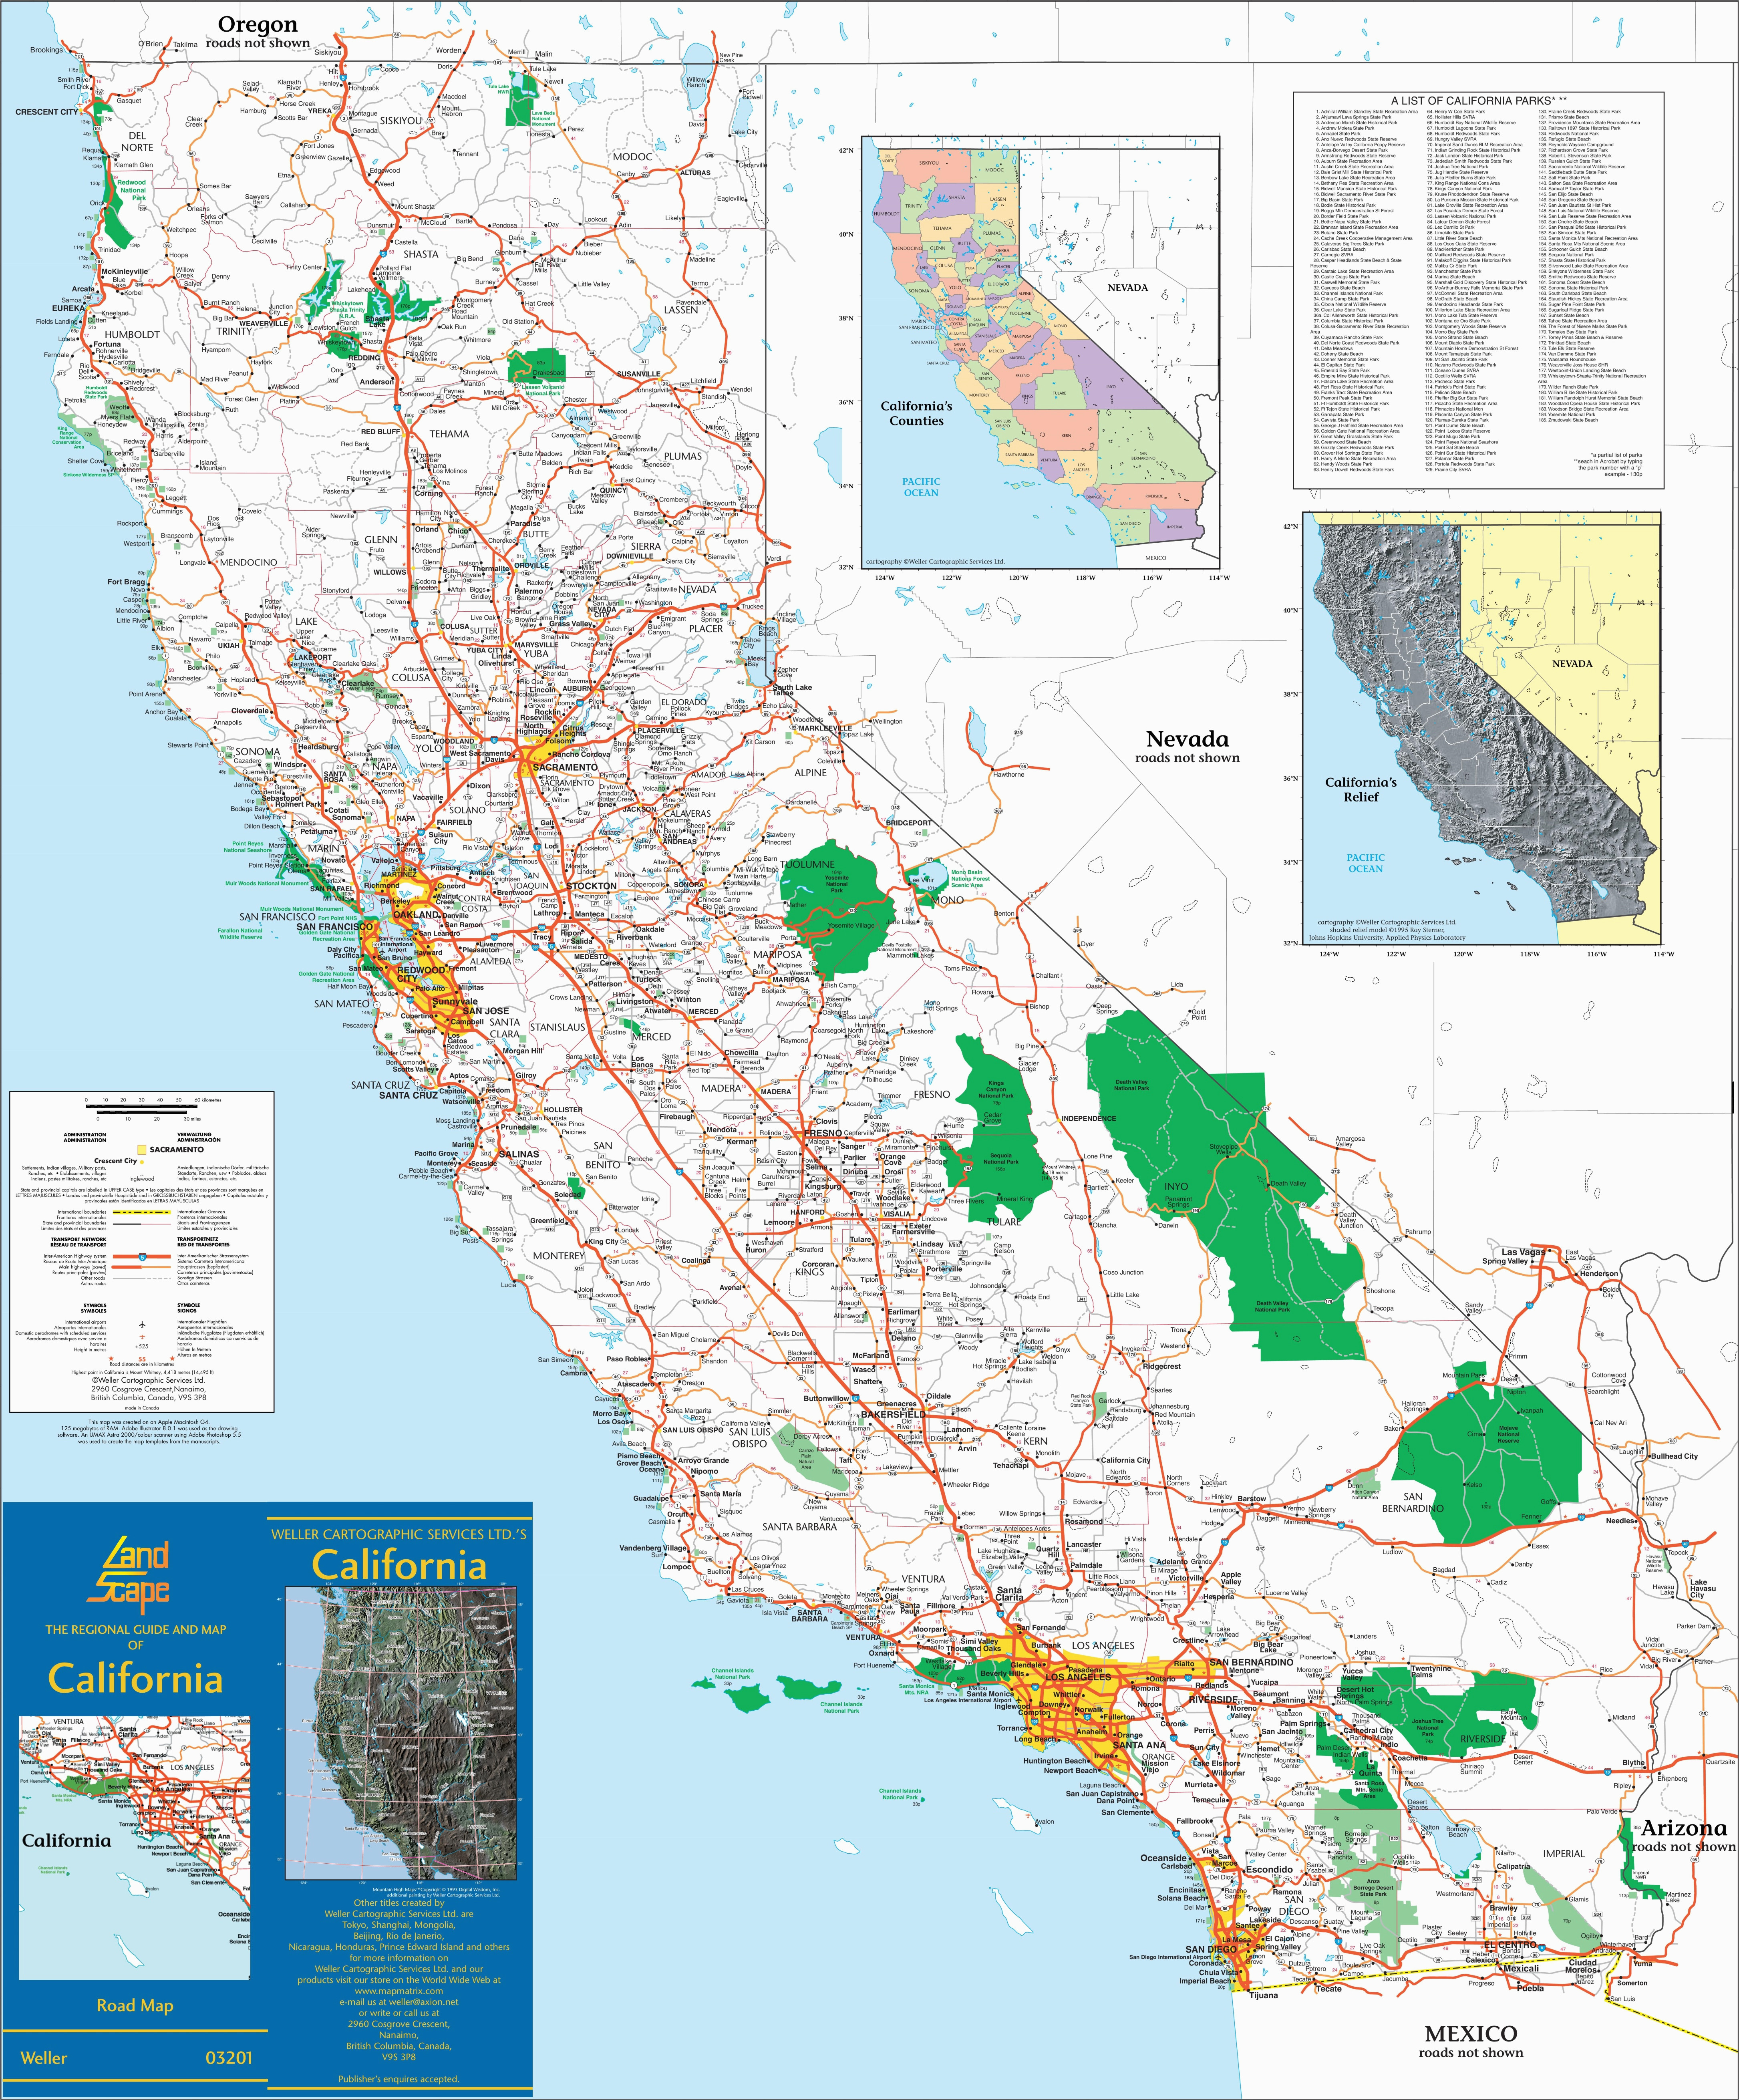 National City California Map Large Detailed Map Of California with Cities and towns